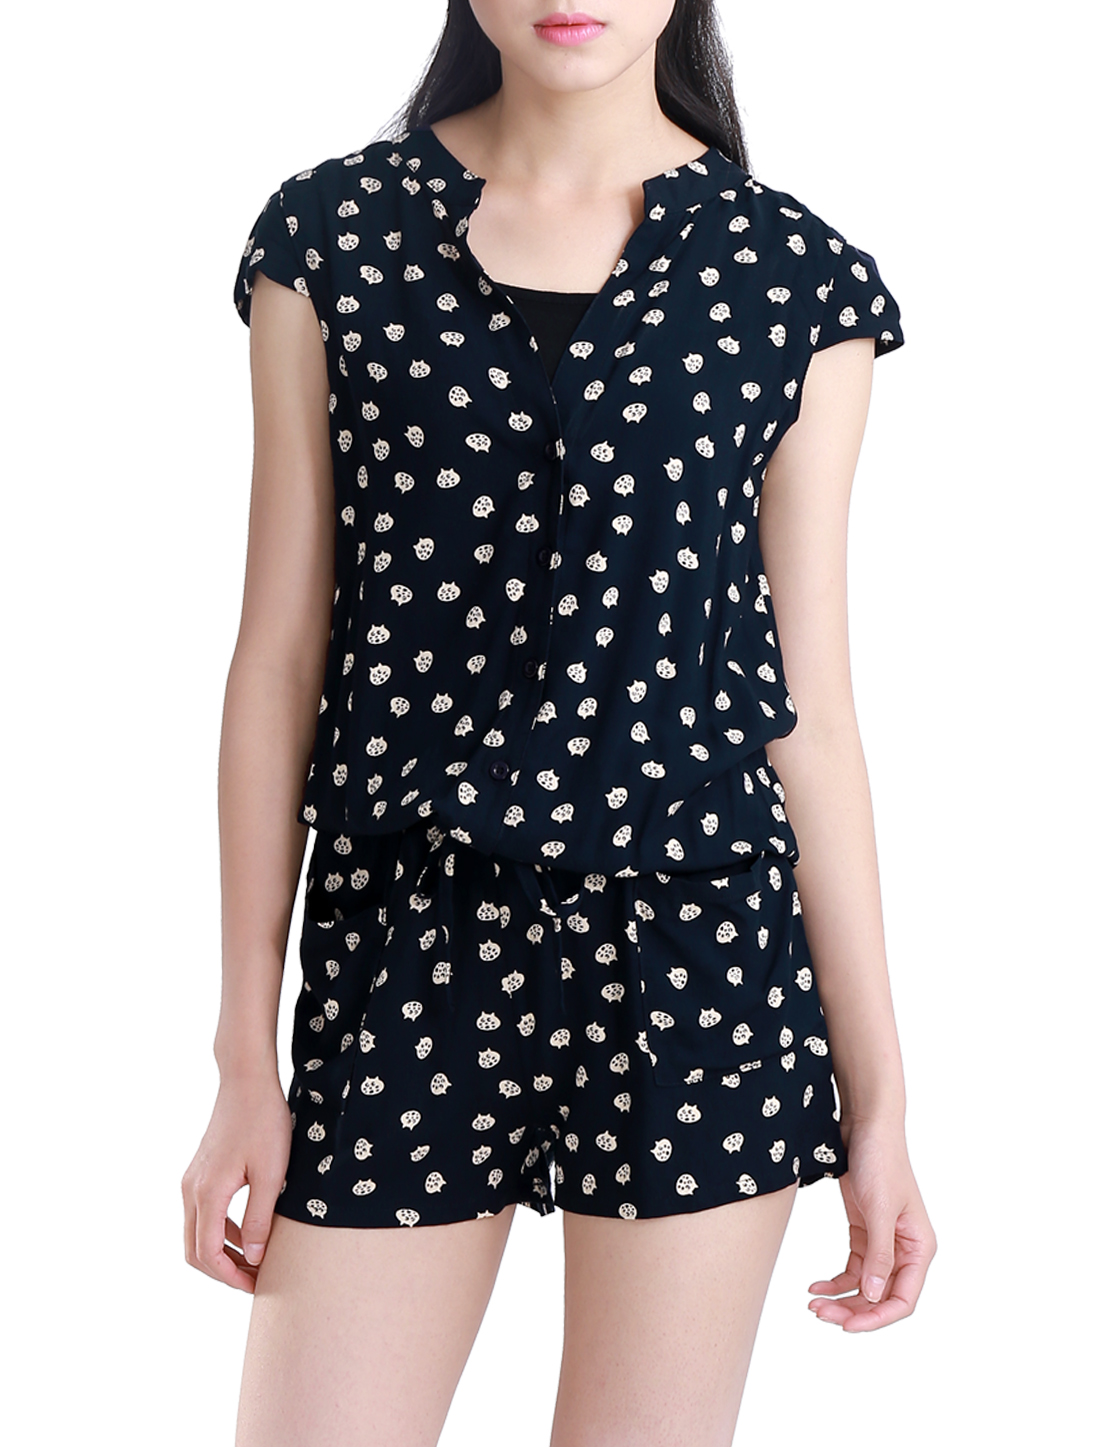 Women Cartoon Pattern Split Neck Cap Sleeve Elastic Waist Romper Dark Blue XS